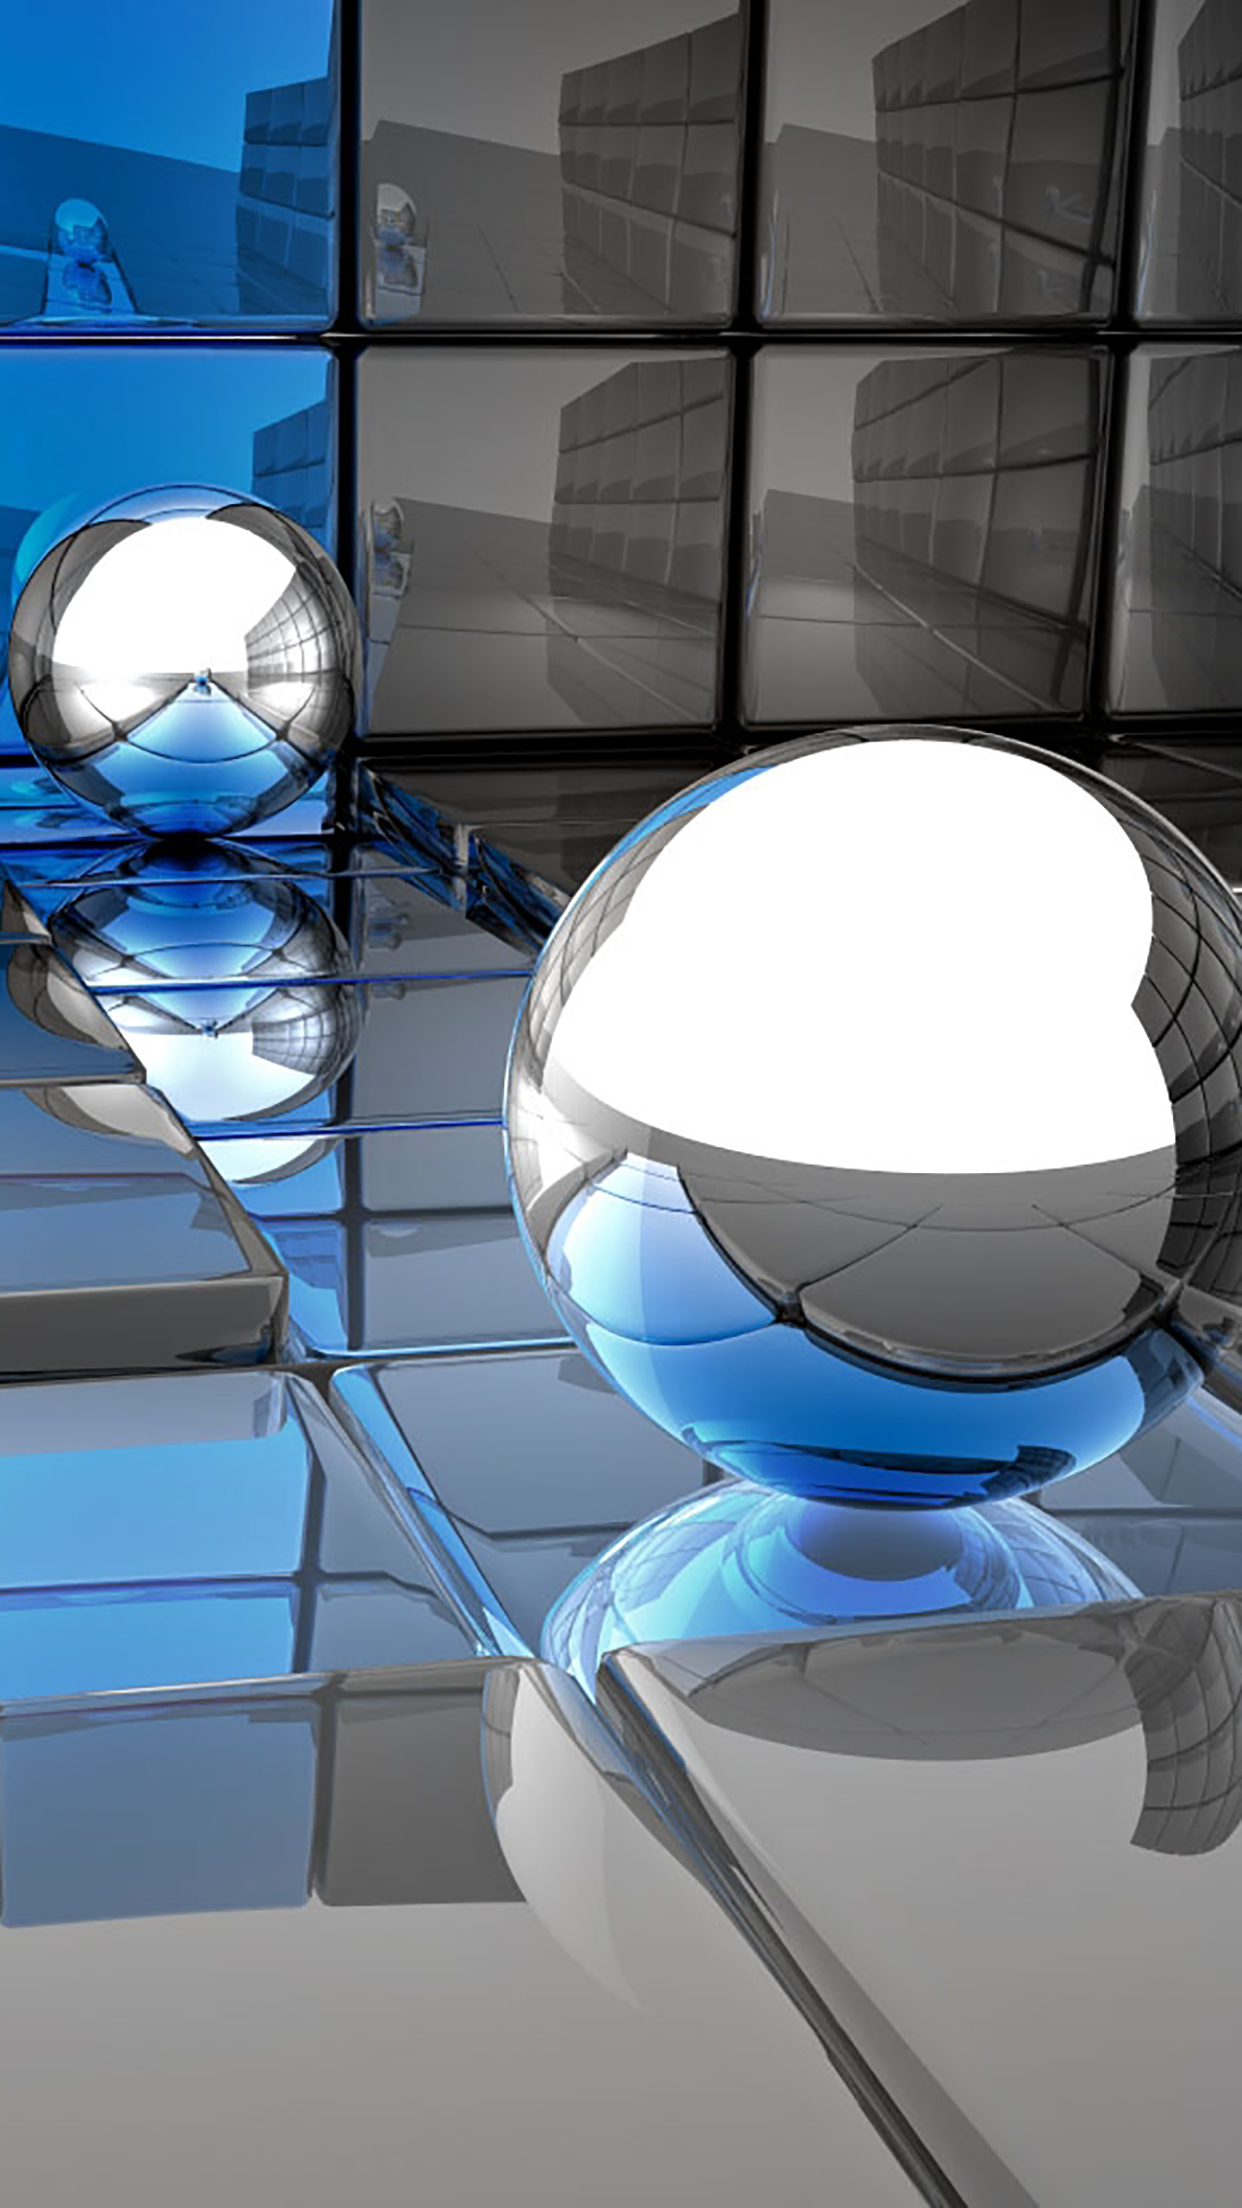 Metal Ball Blue And Gray 3Wallpapers iPhone Parallax Metal Ball : Blue And Gray